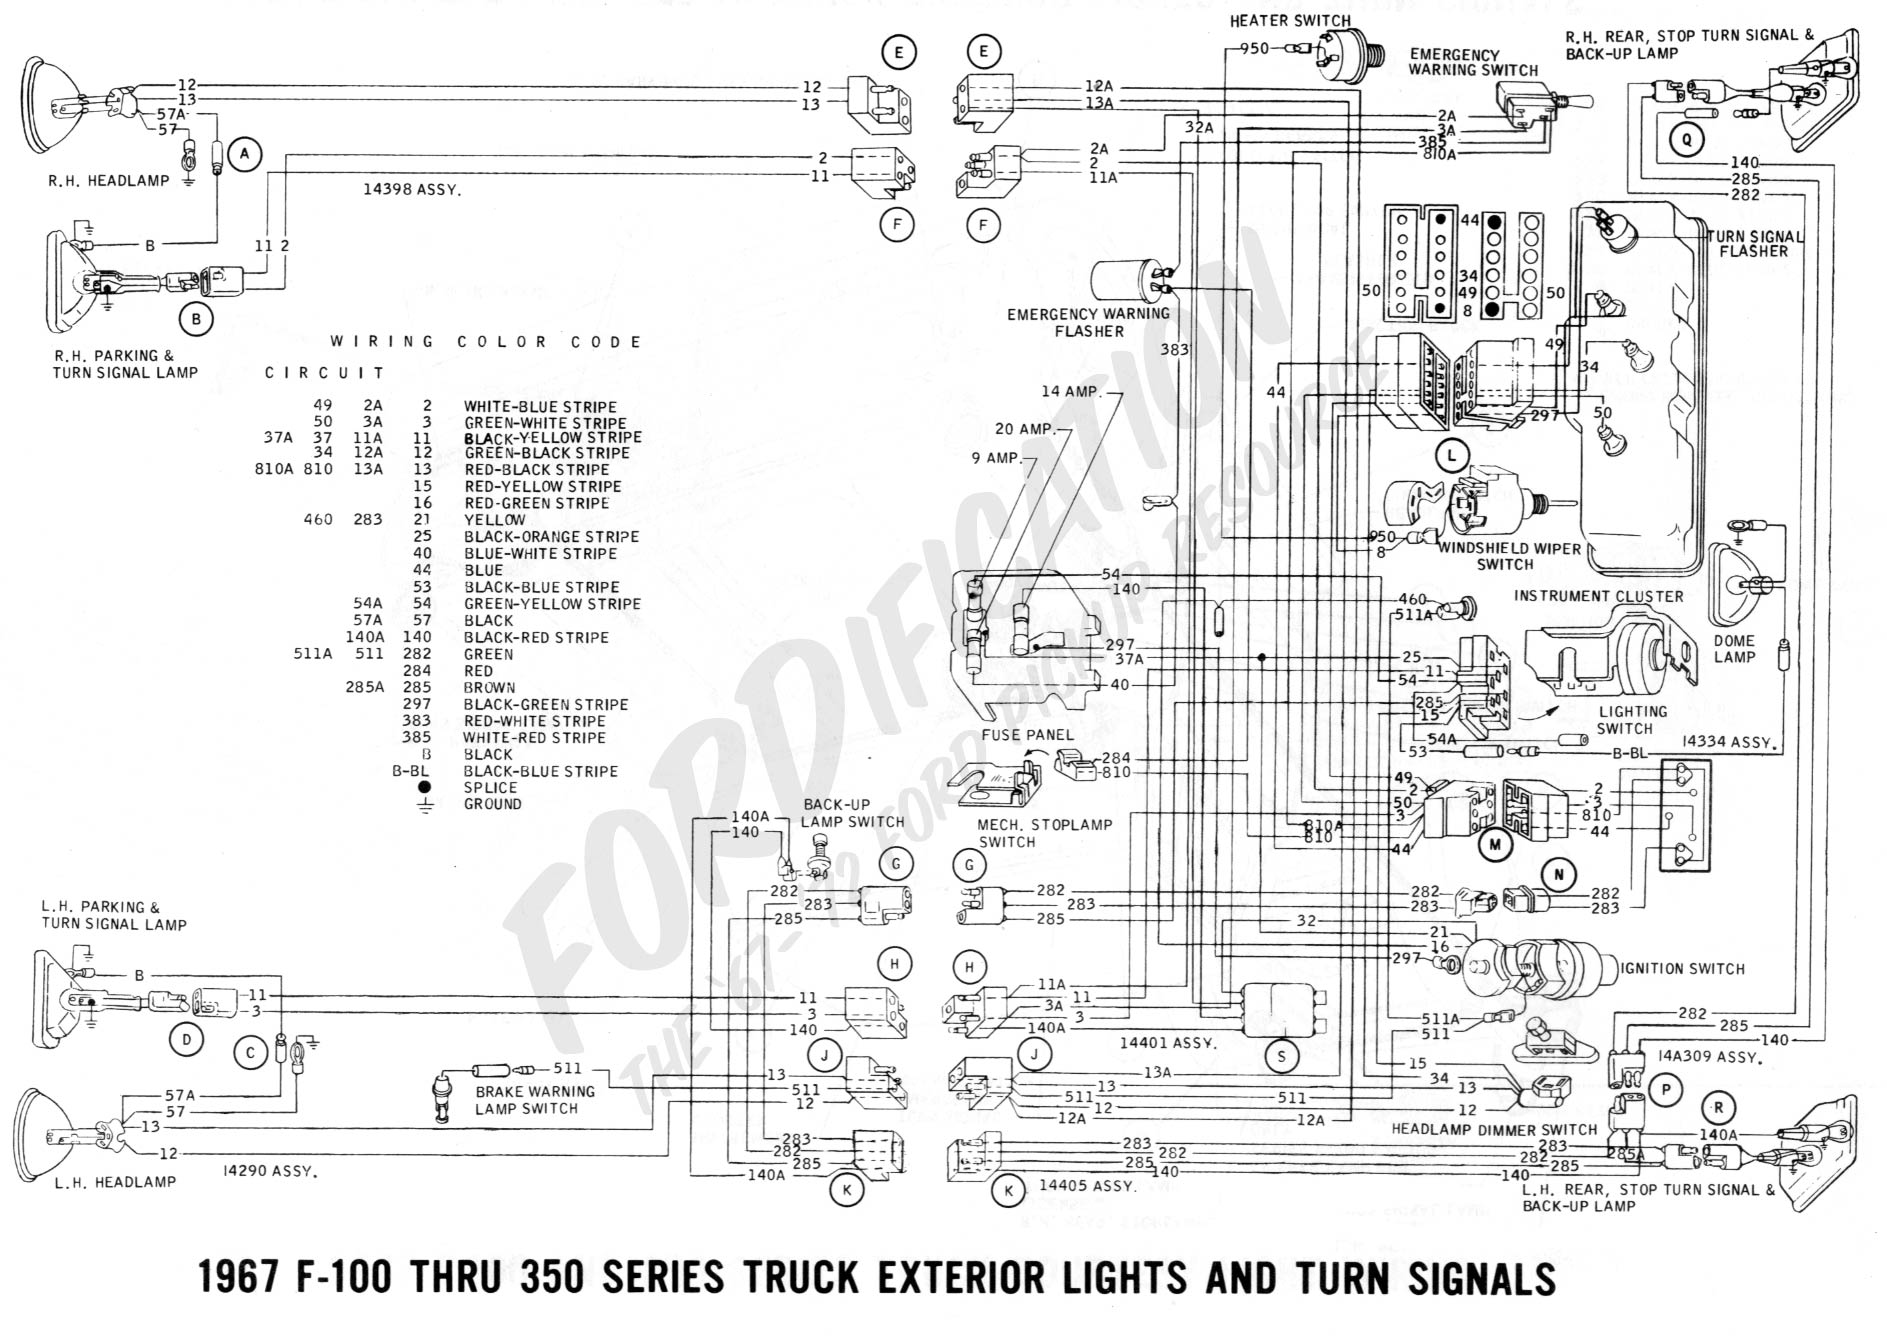 a 1967 f100 wiring application wiring diagram u2022 rh cleanairclub co 1970 Ford Torino Wiring-Diagram 1973 Ford Mustang Wiring Diagram